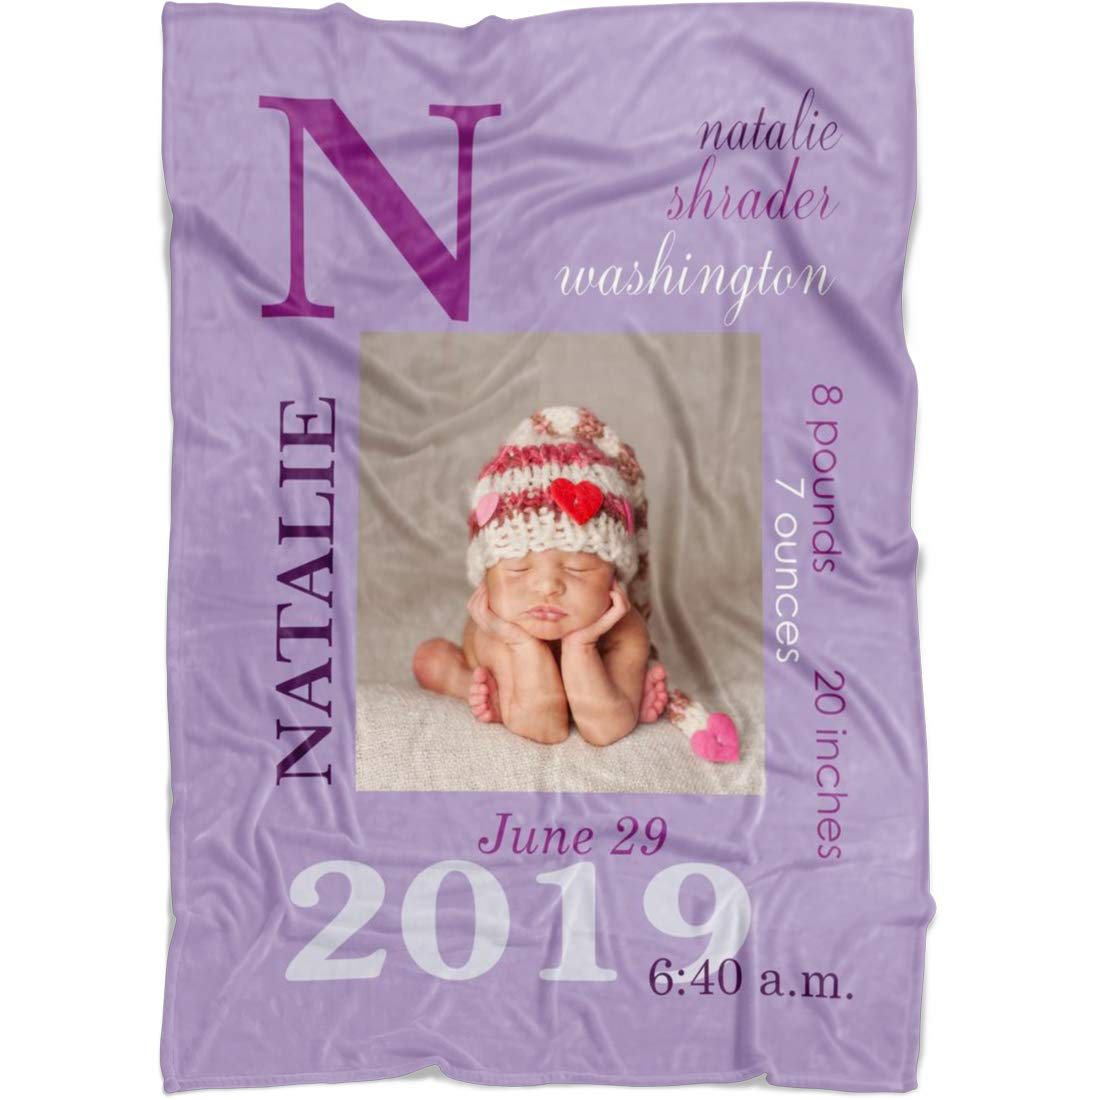 Personalized Name Blanket for Baby Boy Girl and Kids. Custom Name Blanket from Your Baby's Name. Repeating Name Customized Fleece Throw. Gift for Birthday, New Dad, New Mom, Christmas (Purple2) by Yeh Gift